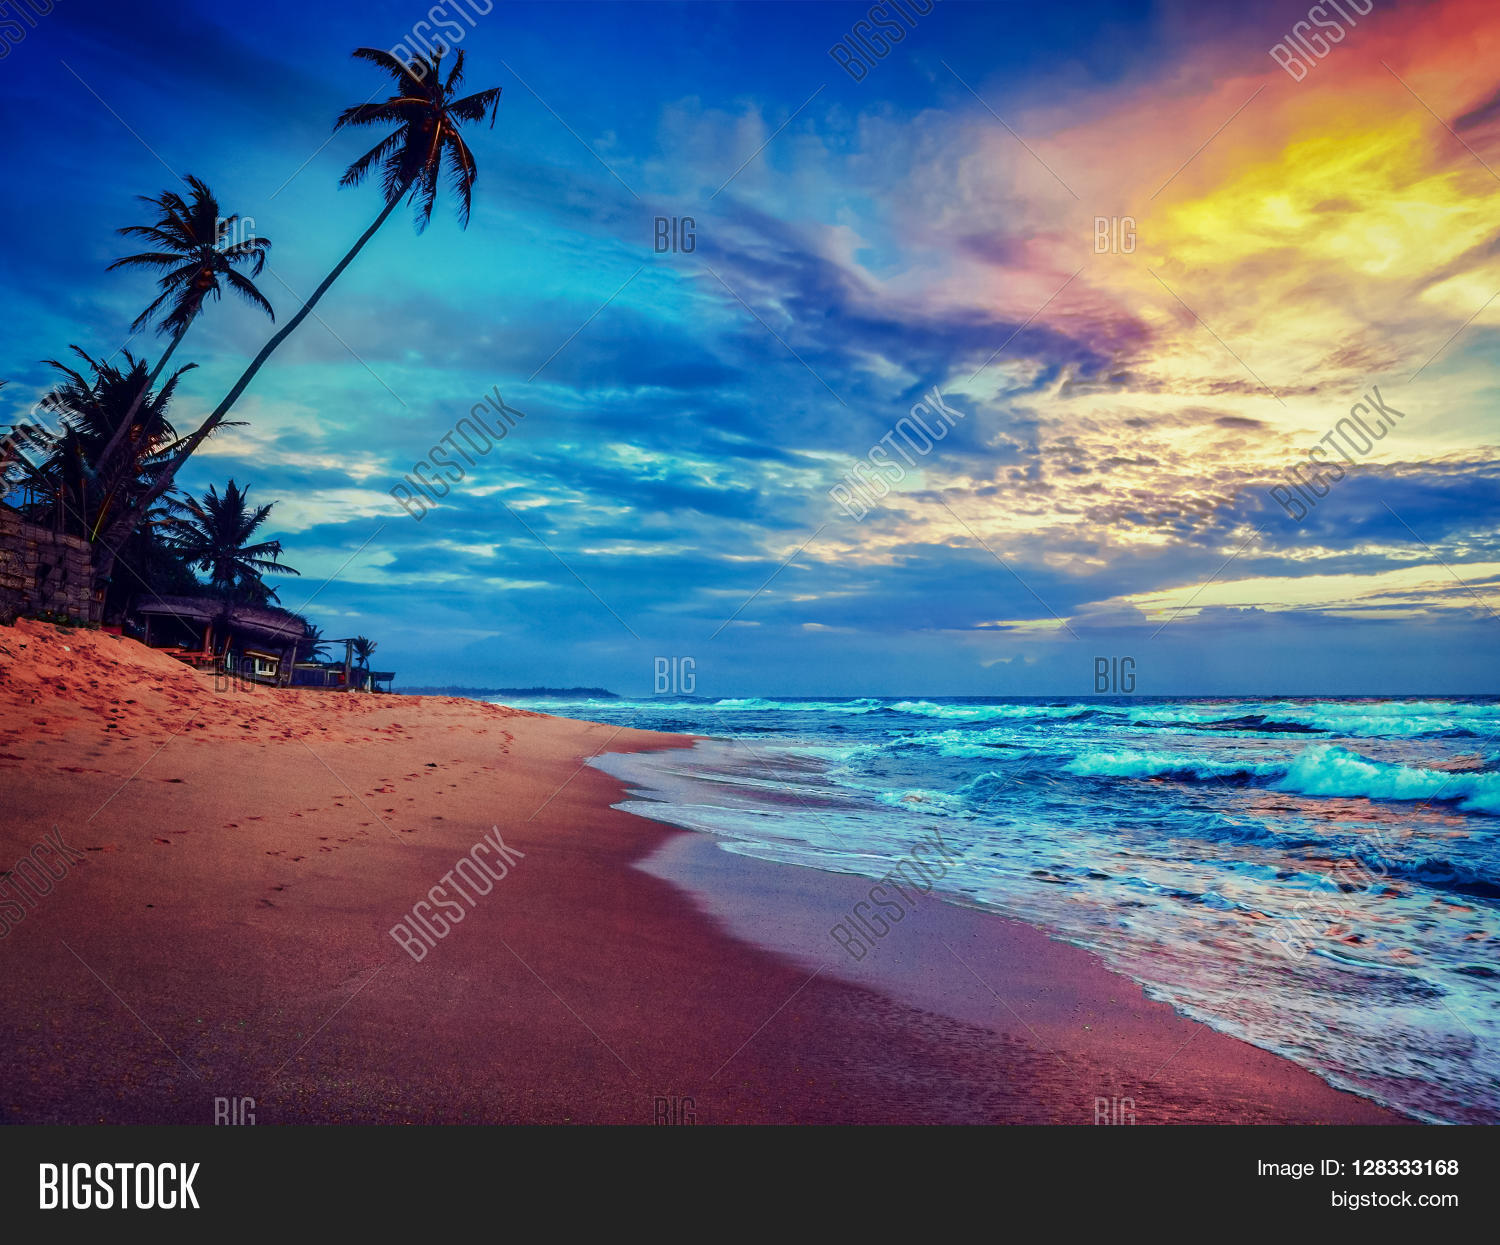 Romantic Pictures Of Tropical Beaches: Beach Holidays Vacation Romantic Concept Background